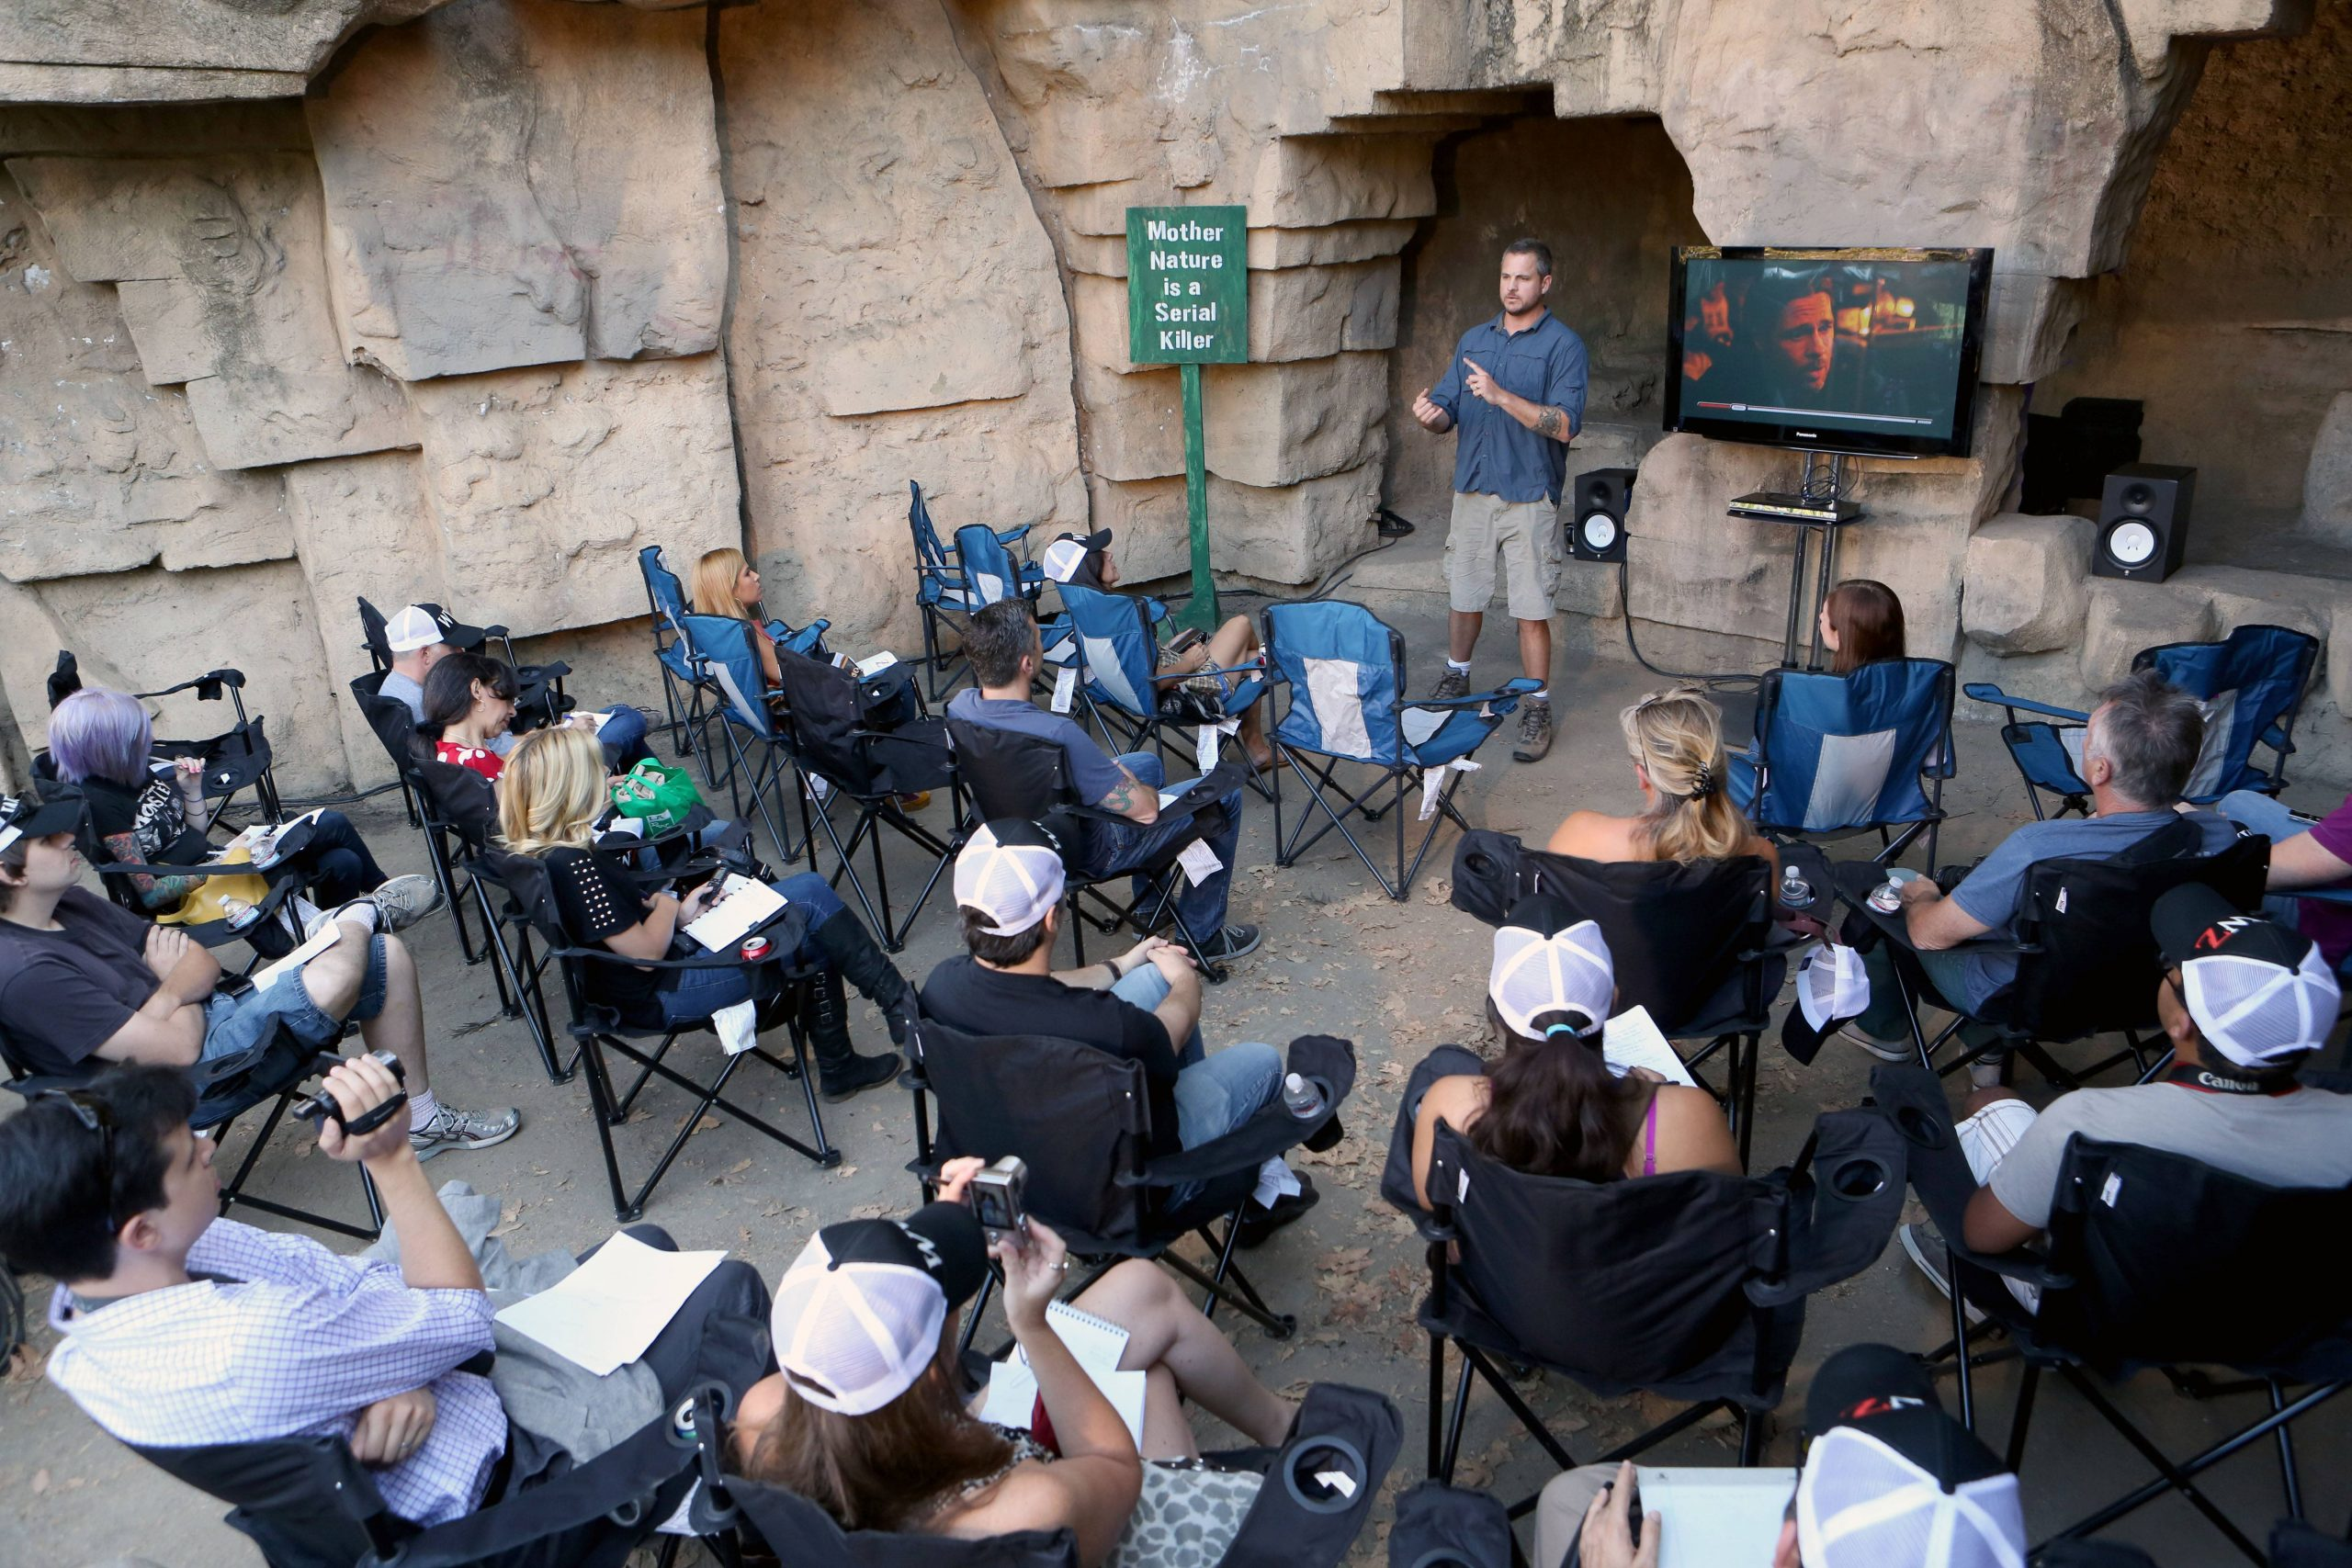 Journalists Learn How To Survive At The World War Z Survival ganzes Zombie Apocalypse Survival Training